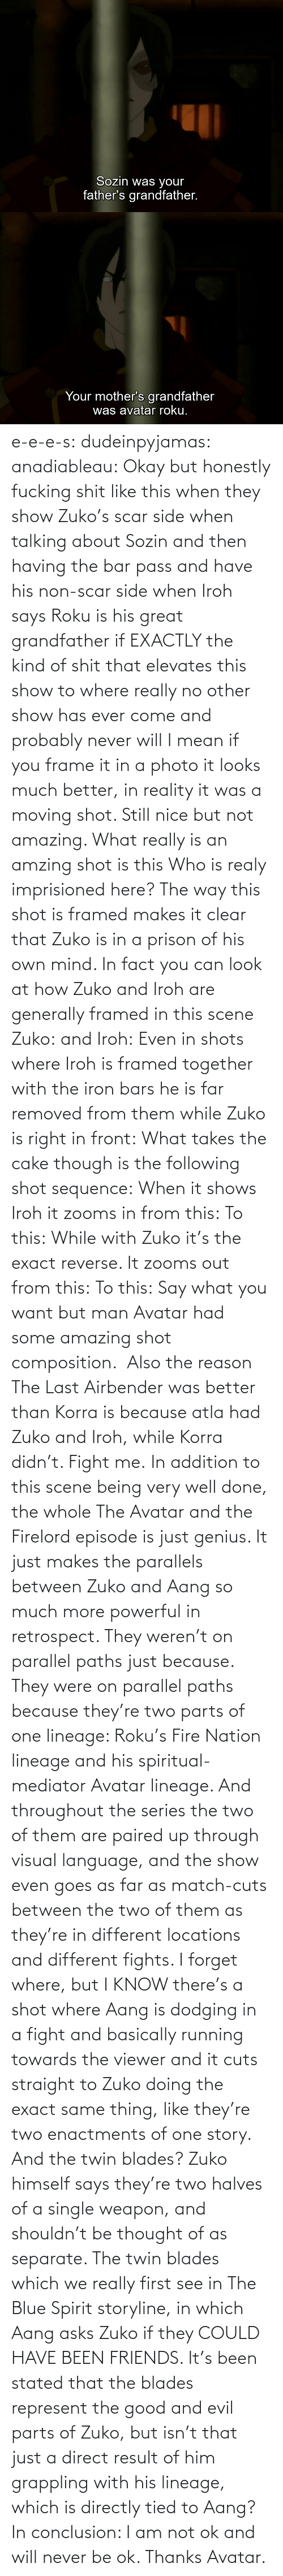 Spirit: e-e-e-s: dudeinpyjamas:   anadiableau: Okay but honestly fucking shit like this when they show Zuko's scar side when talking about Sozin and then having the bar pass and have his non-scar side when Iroh says Roku is his great grandfather if EXACTLY the kind of shit that elevates this show to where really no other show has ever come and probably never will I mean if you frame it in a photo it looks much better, in reality it was a moving shot. Still nice but not amazing. What really is an amzing shot is this Who is realy imprisioned here? The way this shot is framed makes it clear that Zuko is in a prison of his own mind. In fact you can look at how Zuko and Iroh are generally framed in this scene Zuko: and Iroh: Even in shots where Iroh is framed together with the iron bars he is far removed from them while Zuko is right in front:  What takes the cake though is the following shot sequence: When it shows Iroh it zooms in from this: To this: While with Zuko it's the exact reverse. It zooms out from this: To this: Say what you want but man Avatar had some amazing shot composition.   Also the reason The Last Airbender was better than Korra is because atla had Zuko and Iroh, while Korra didn't. Fight me.    In addition to this scene being very well done, the whole The Avatar and the Firelord episode is just genius.  It just makes the parallels between Zuko and Aang so much more powerful in retrospect.  They weren't on parallel paths just because.  They were on parallel paths because they're two parts of one lineage: Roku's Fire Nation lineage and his spiritual-mediator Avatar lineage.  And throughout the series the two of them are paired up through visual language, and the show even goes as far as match-cuts between the two of them as they're in different locations and different fights.  I forget where, but I KNOW there's a shot where Aang is dodging in a fight and basically running towards the viewer and it cuts straight to Zuko doing the exact same thing, like they're two enactments of one story.   And the twin blades?  Zuko himself says they're two halves of a single weapon, and shouldn't be thought of as separate.  The twin blades which we really first see in The Blue Spirit storyline, in which Aang asks Zuko if they COULD HAVE BEEN FRIENDS.  It's been stated that the blades represent the good and evil parts of Zuko, but isn't that just a direct result of him grappling with his lineage, which is directly tied to Aang? In conclusion: I am not ok and will never be ok.  Thanks Avatar.